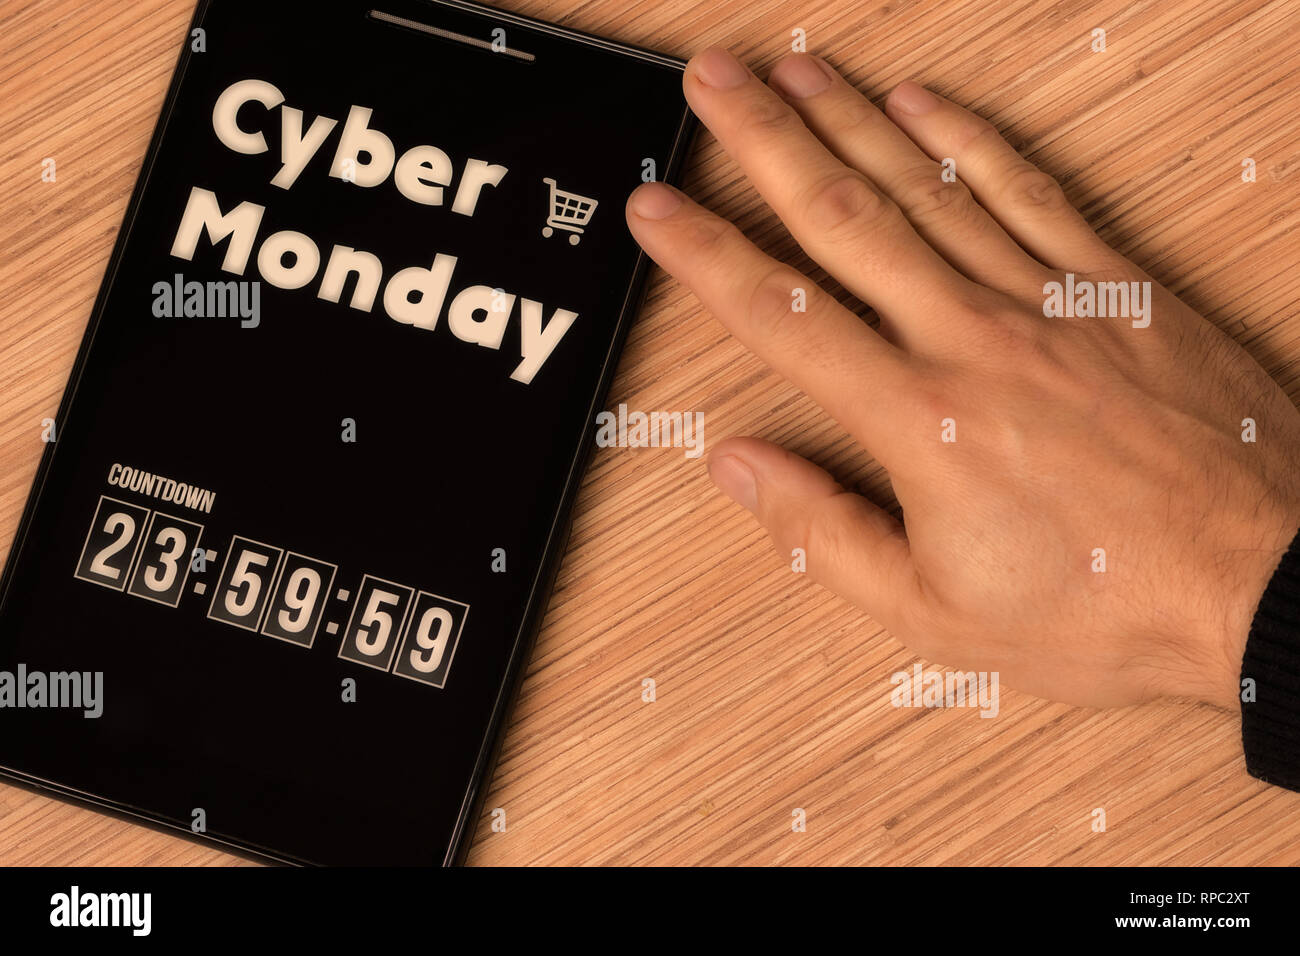 Cyber Monday countdown - Stock Image